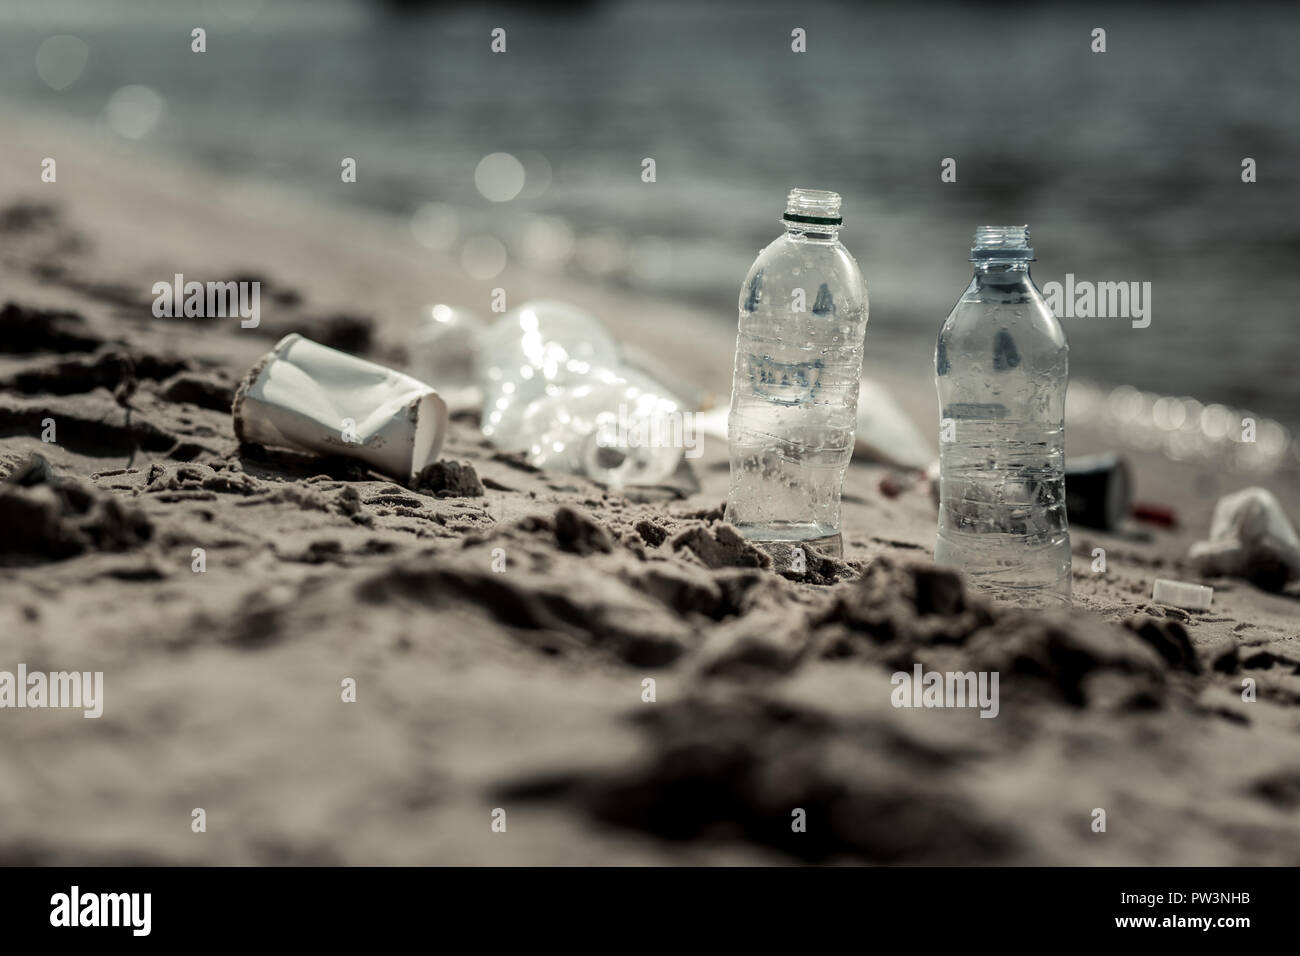 Close up of empty plastic bottles left behind by irresponsible people near the river - Stock Image